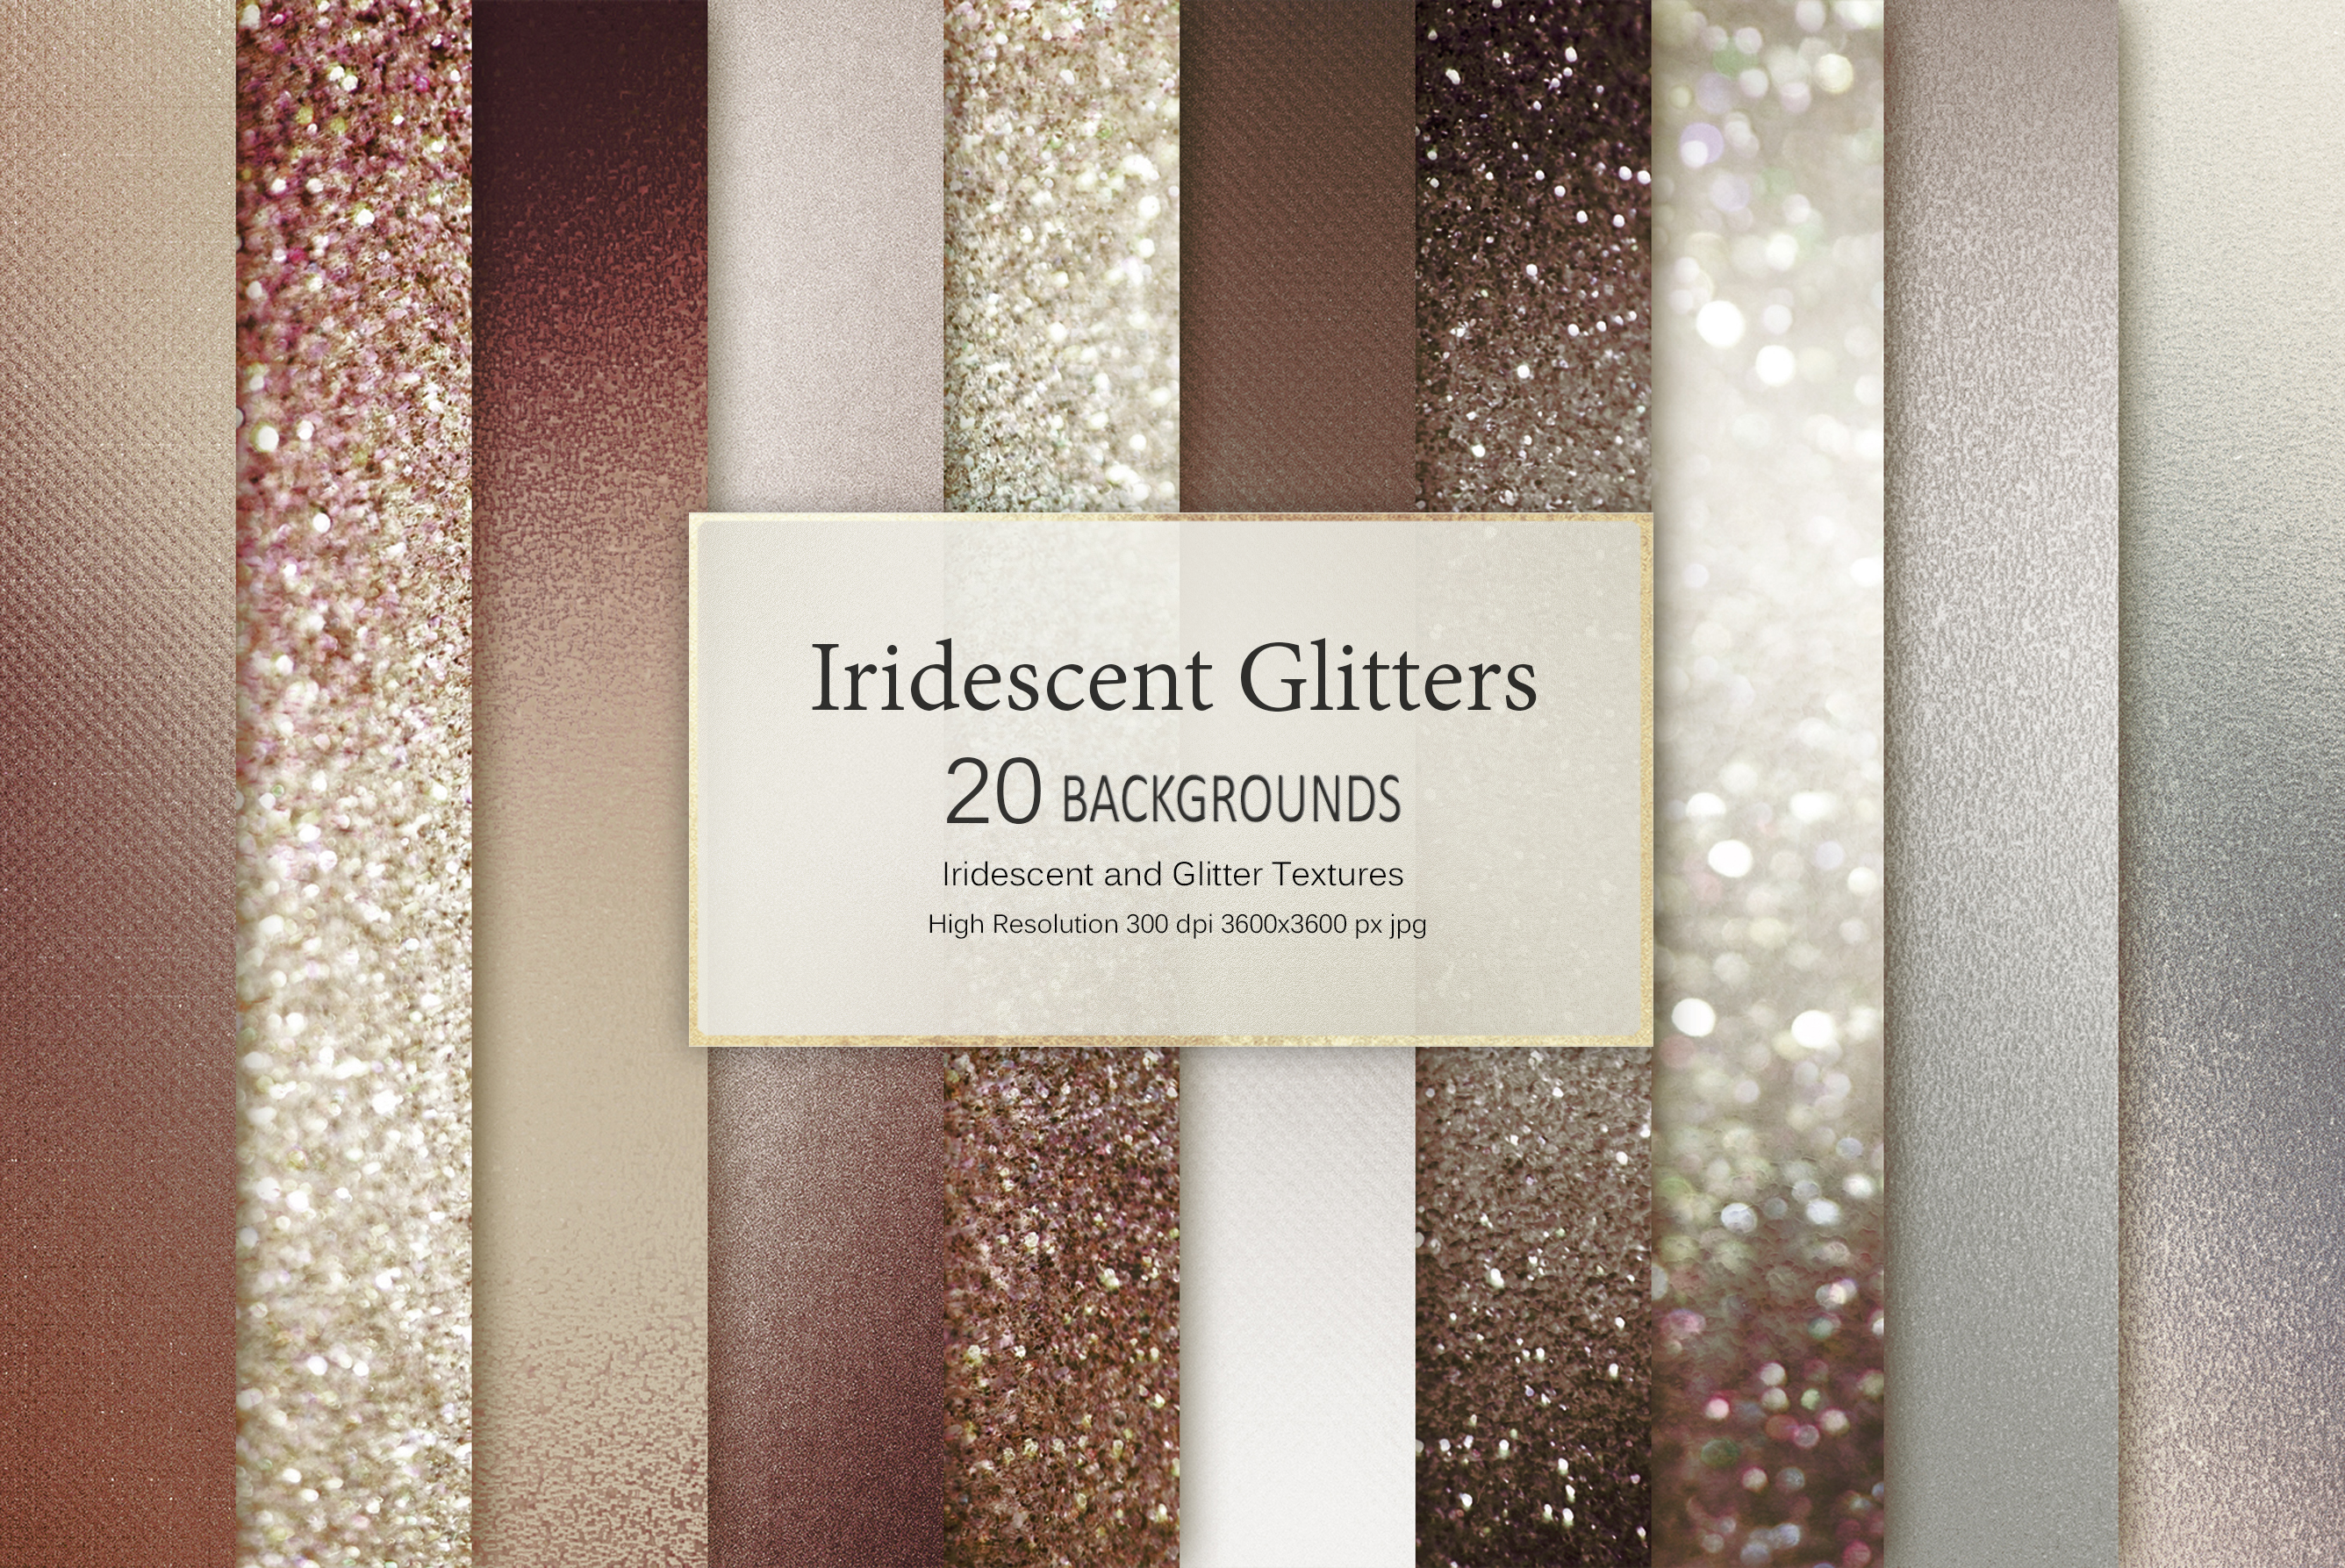 Brown Iridescent and Glitter Foil Textures example image 2